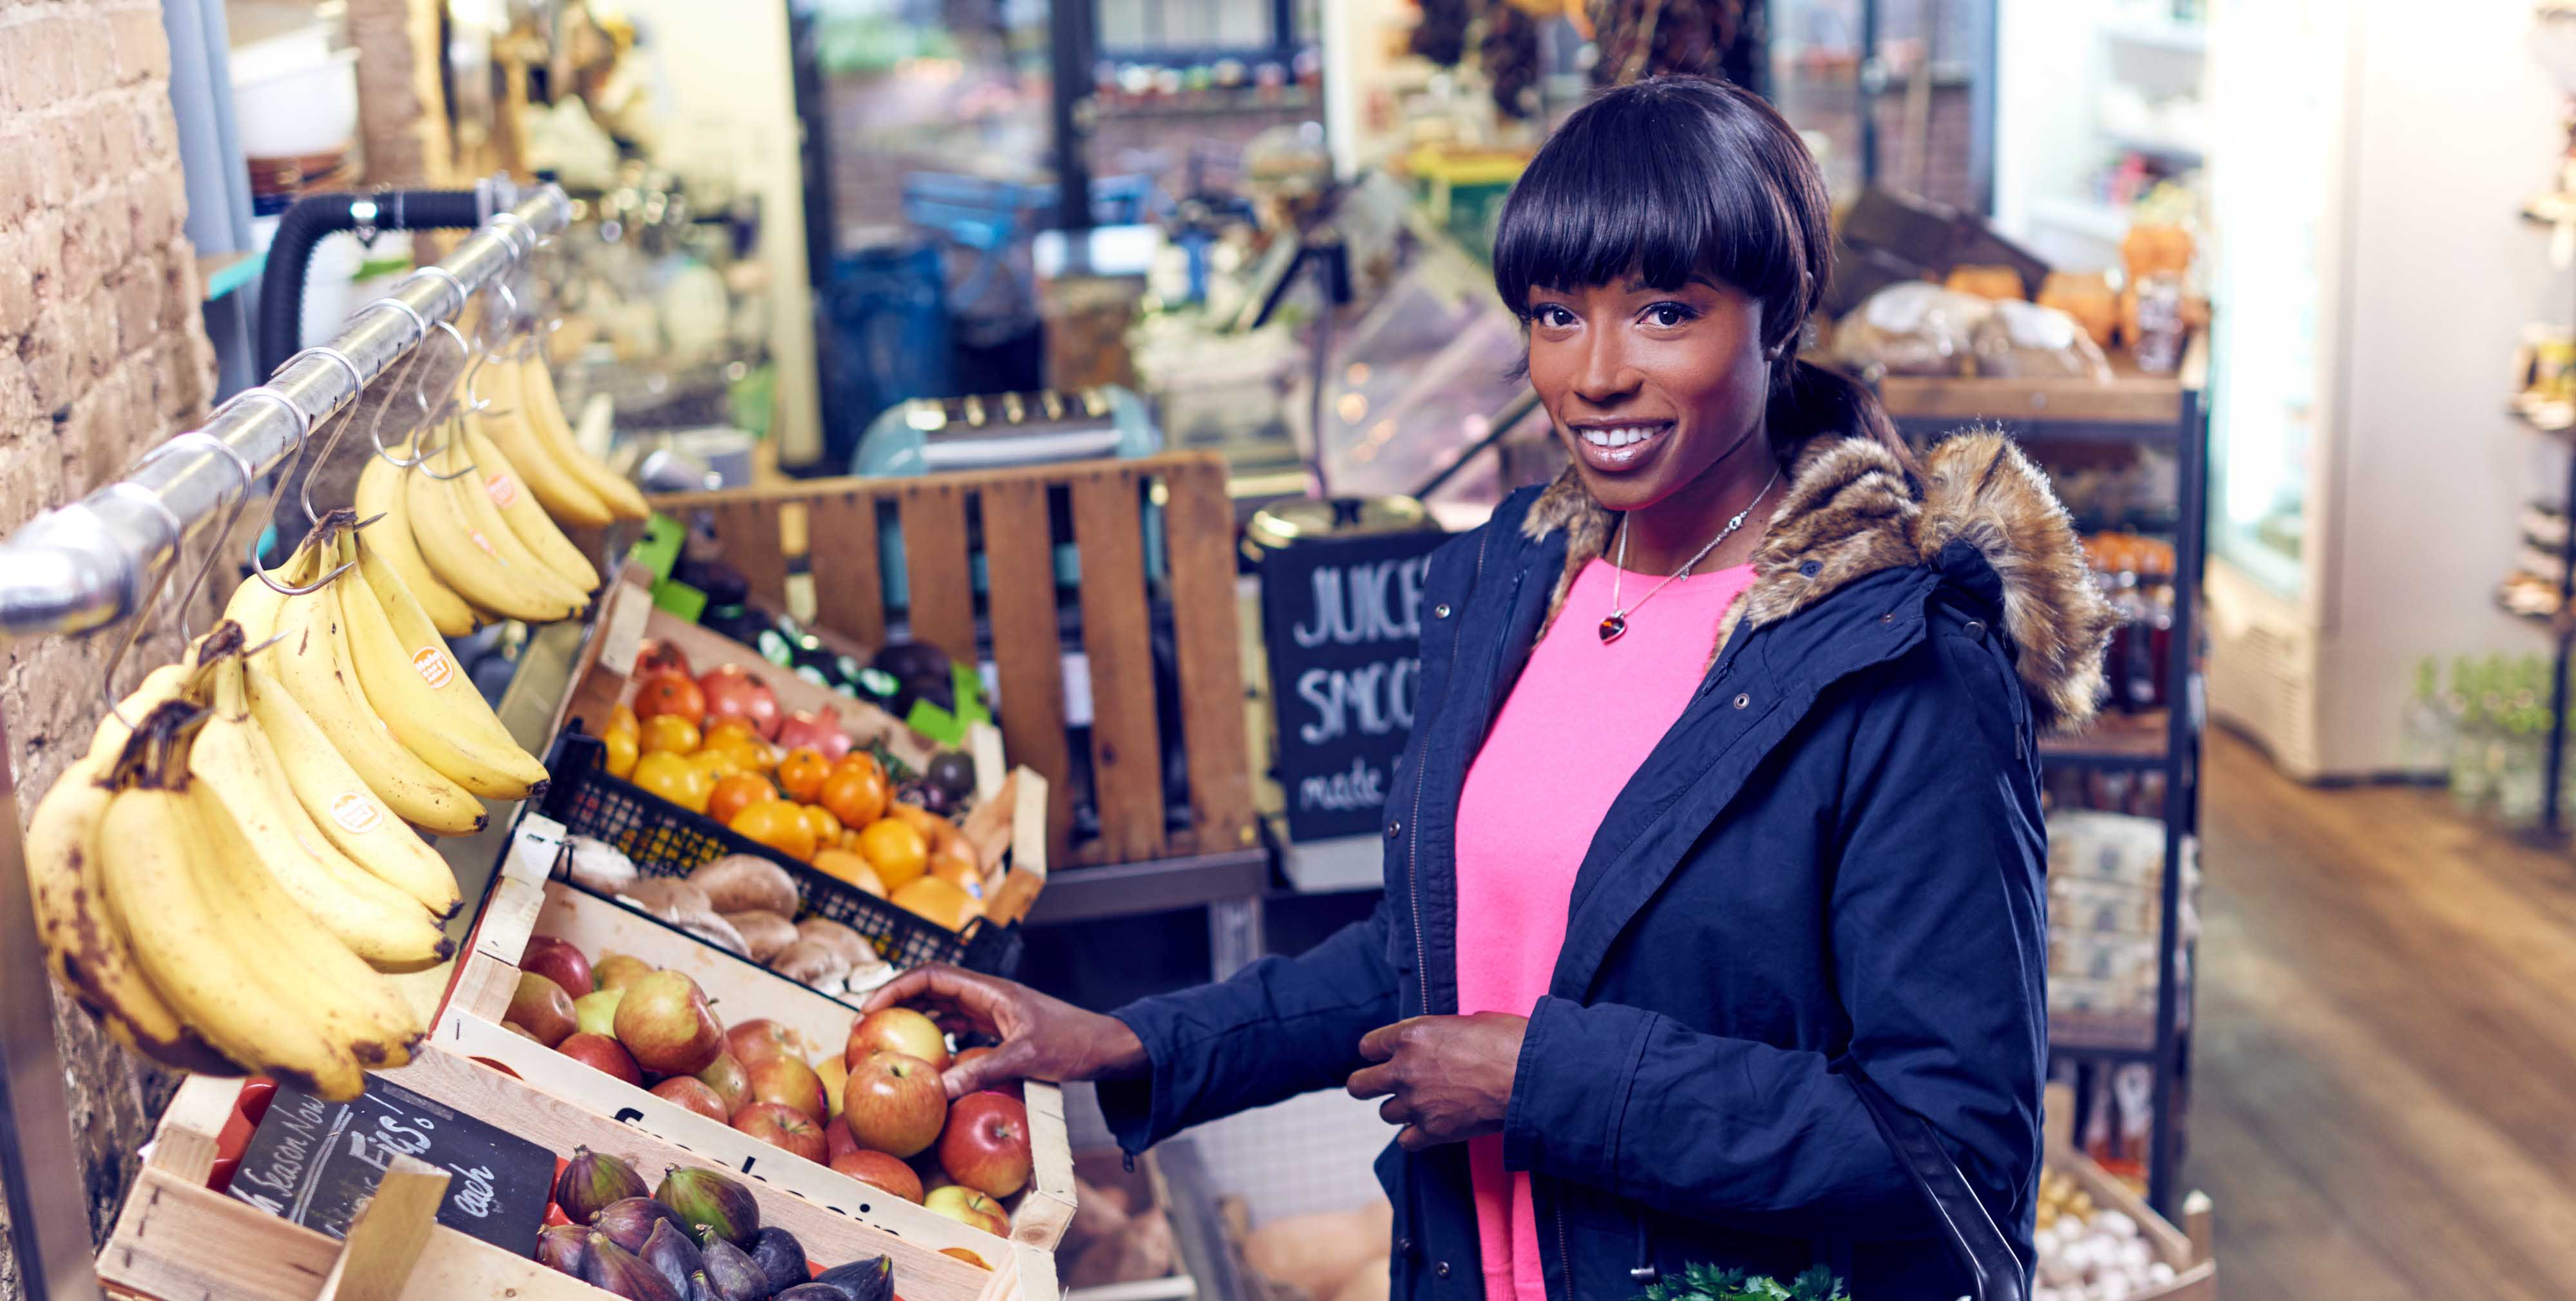 Lorraine Pascale shopping for fruit and veg